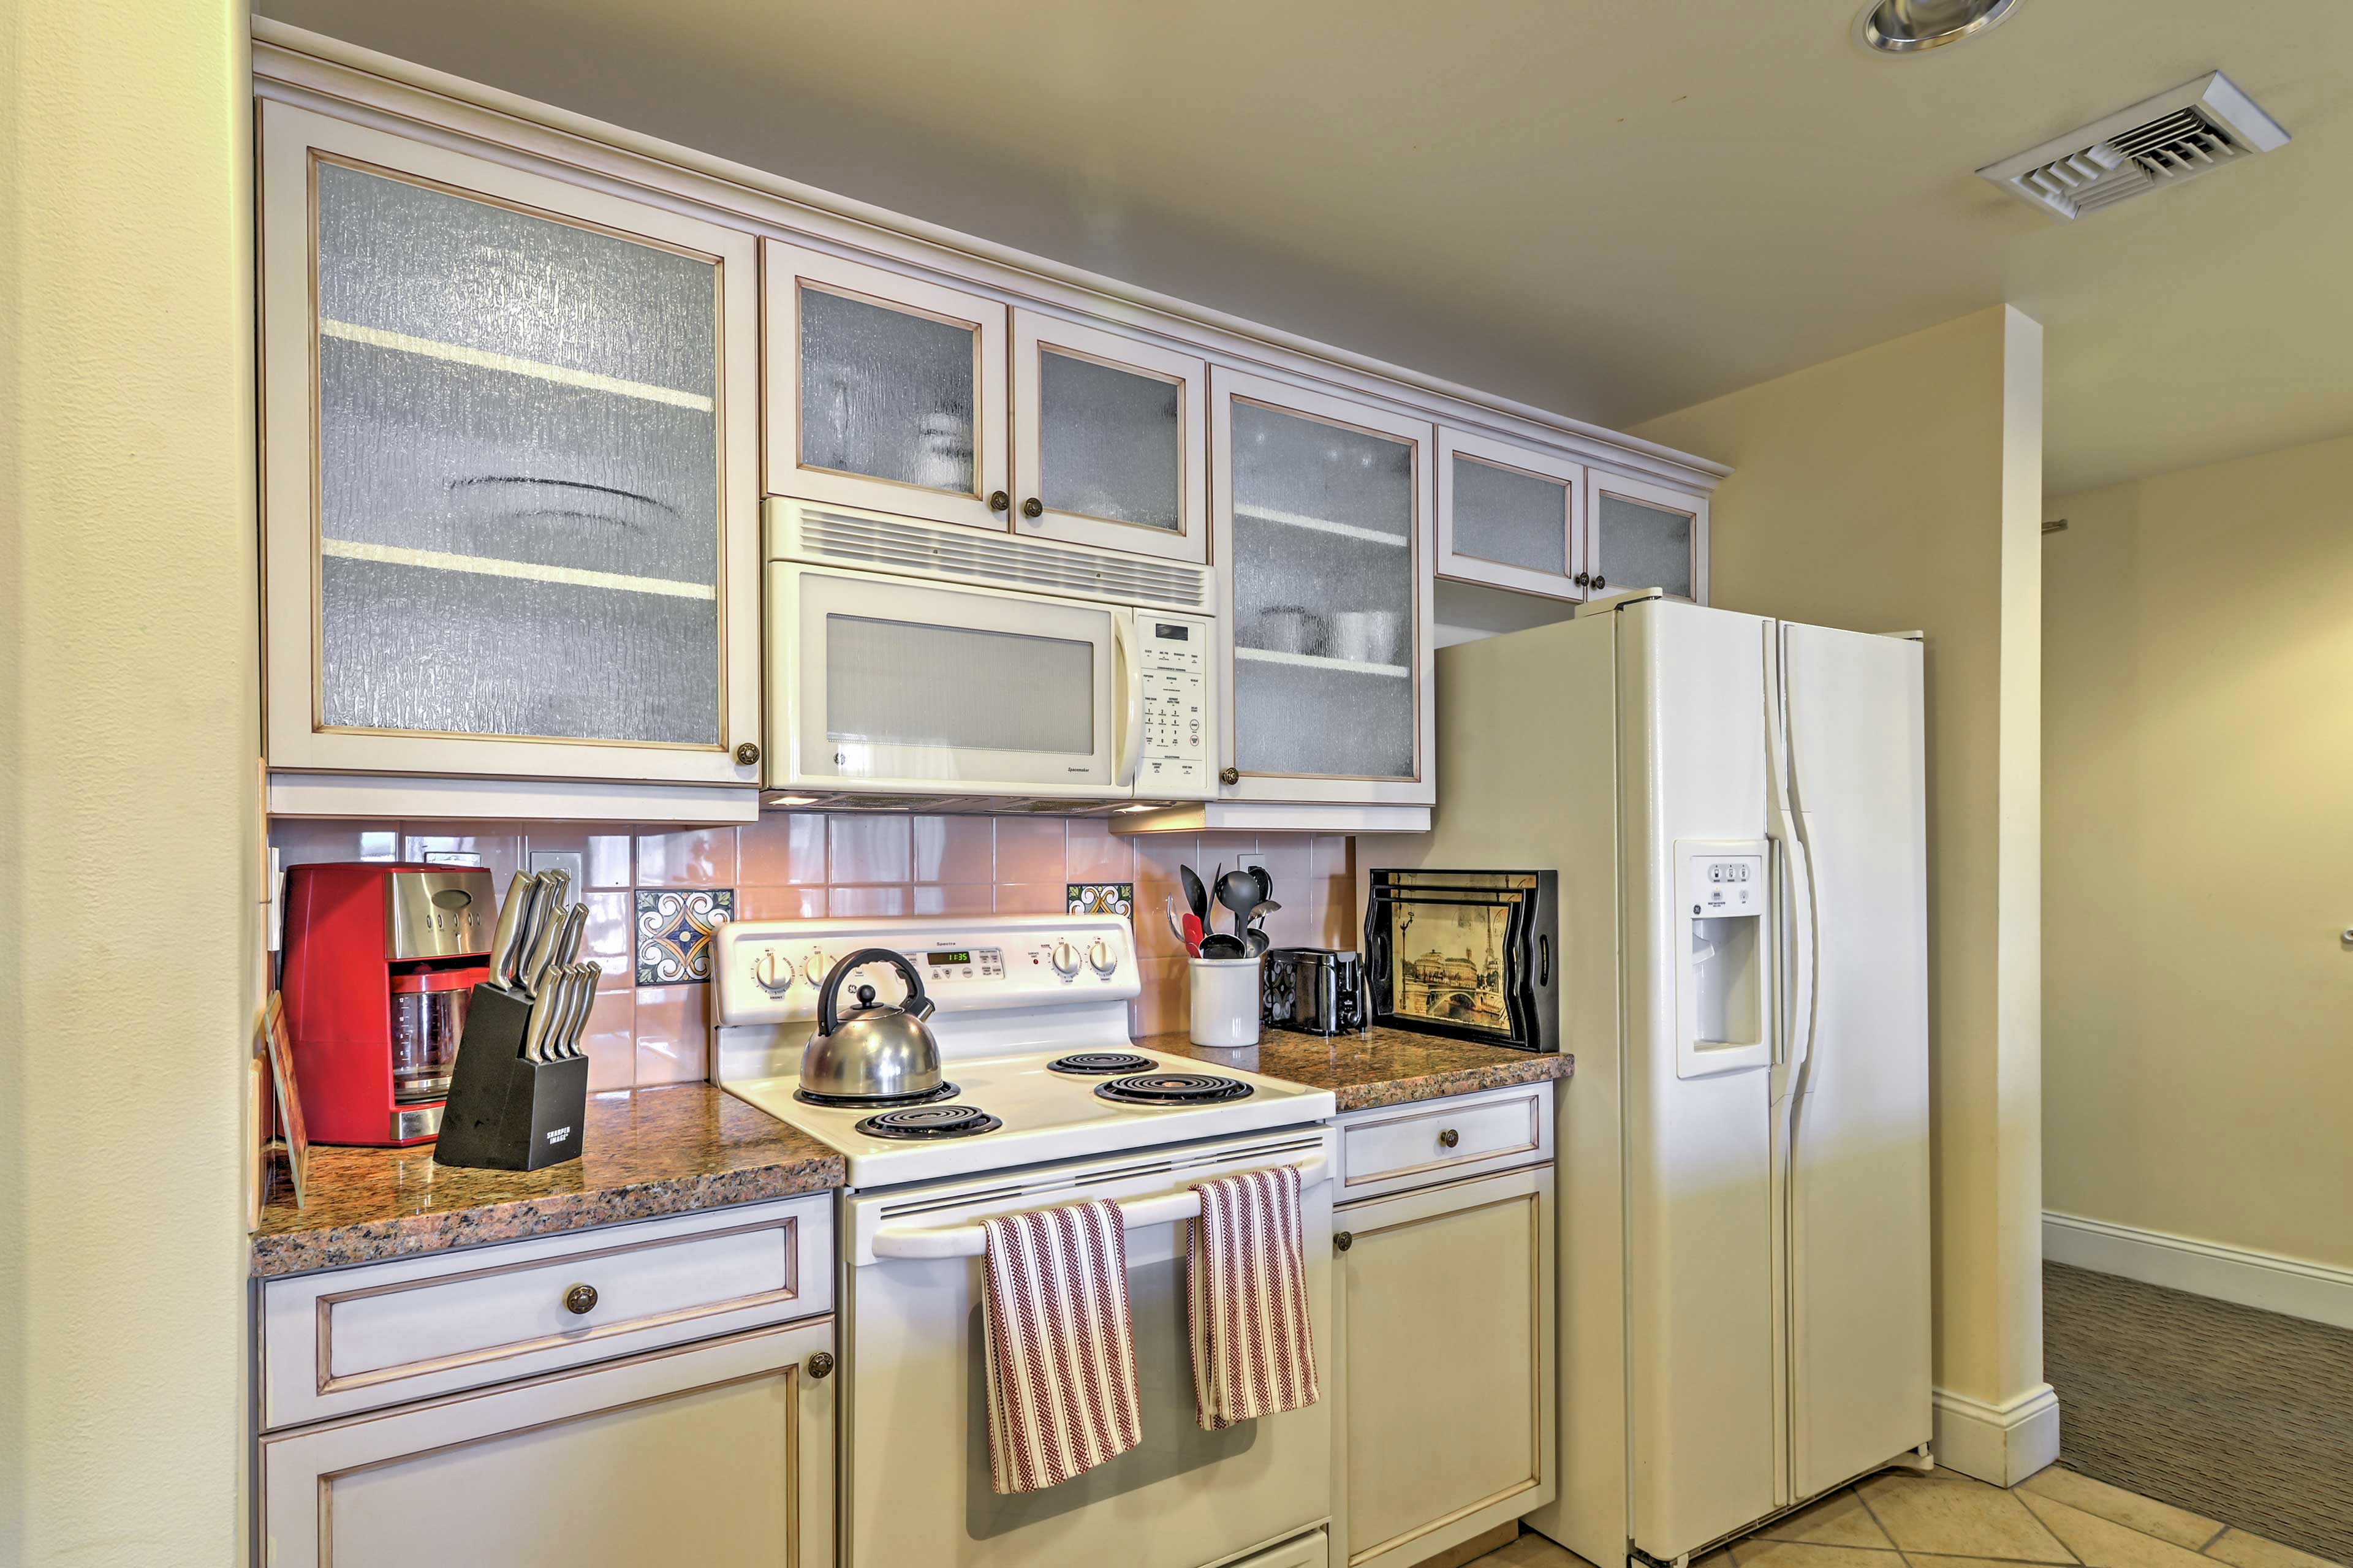 Bring your favorite recipes to life in the fully equipped kitchen.